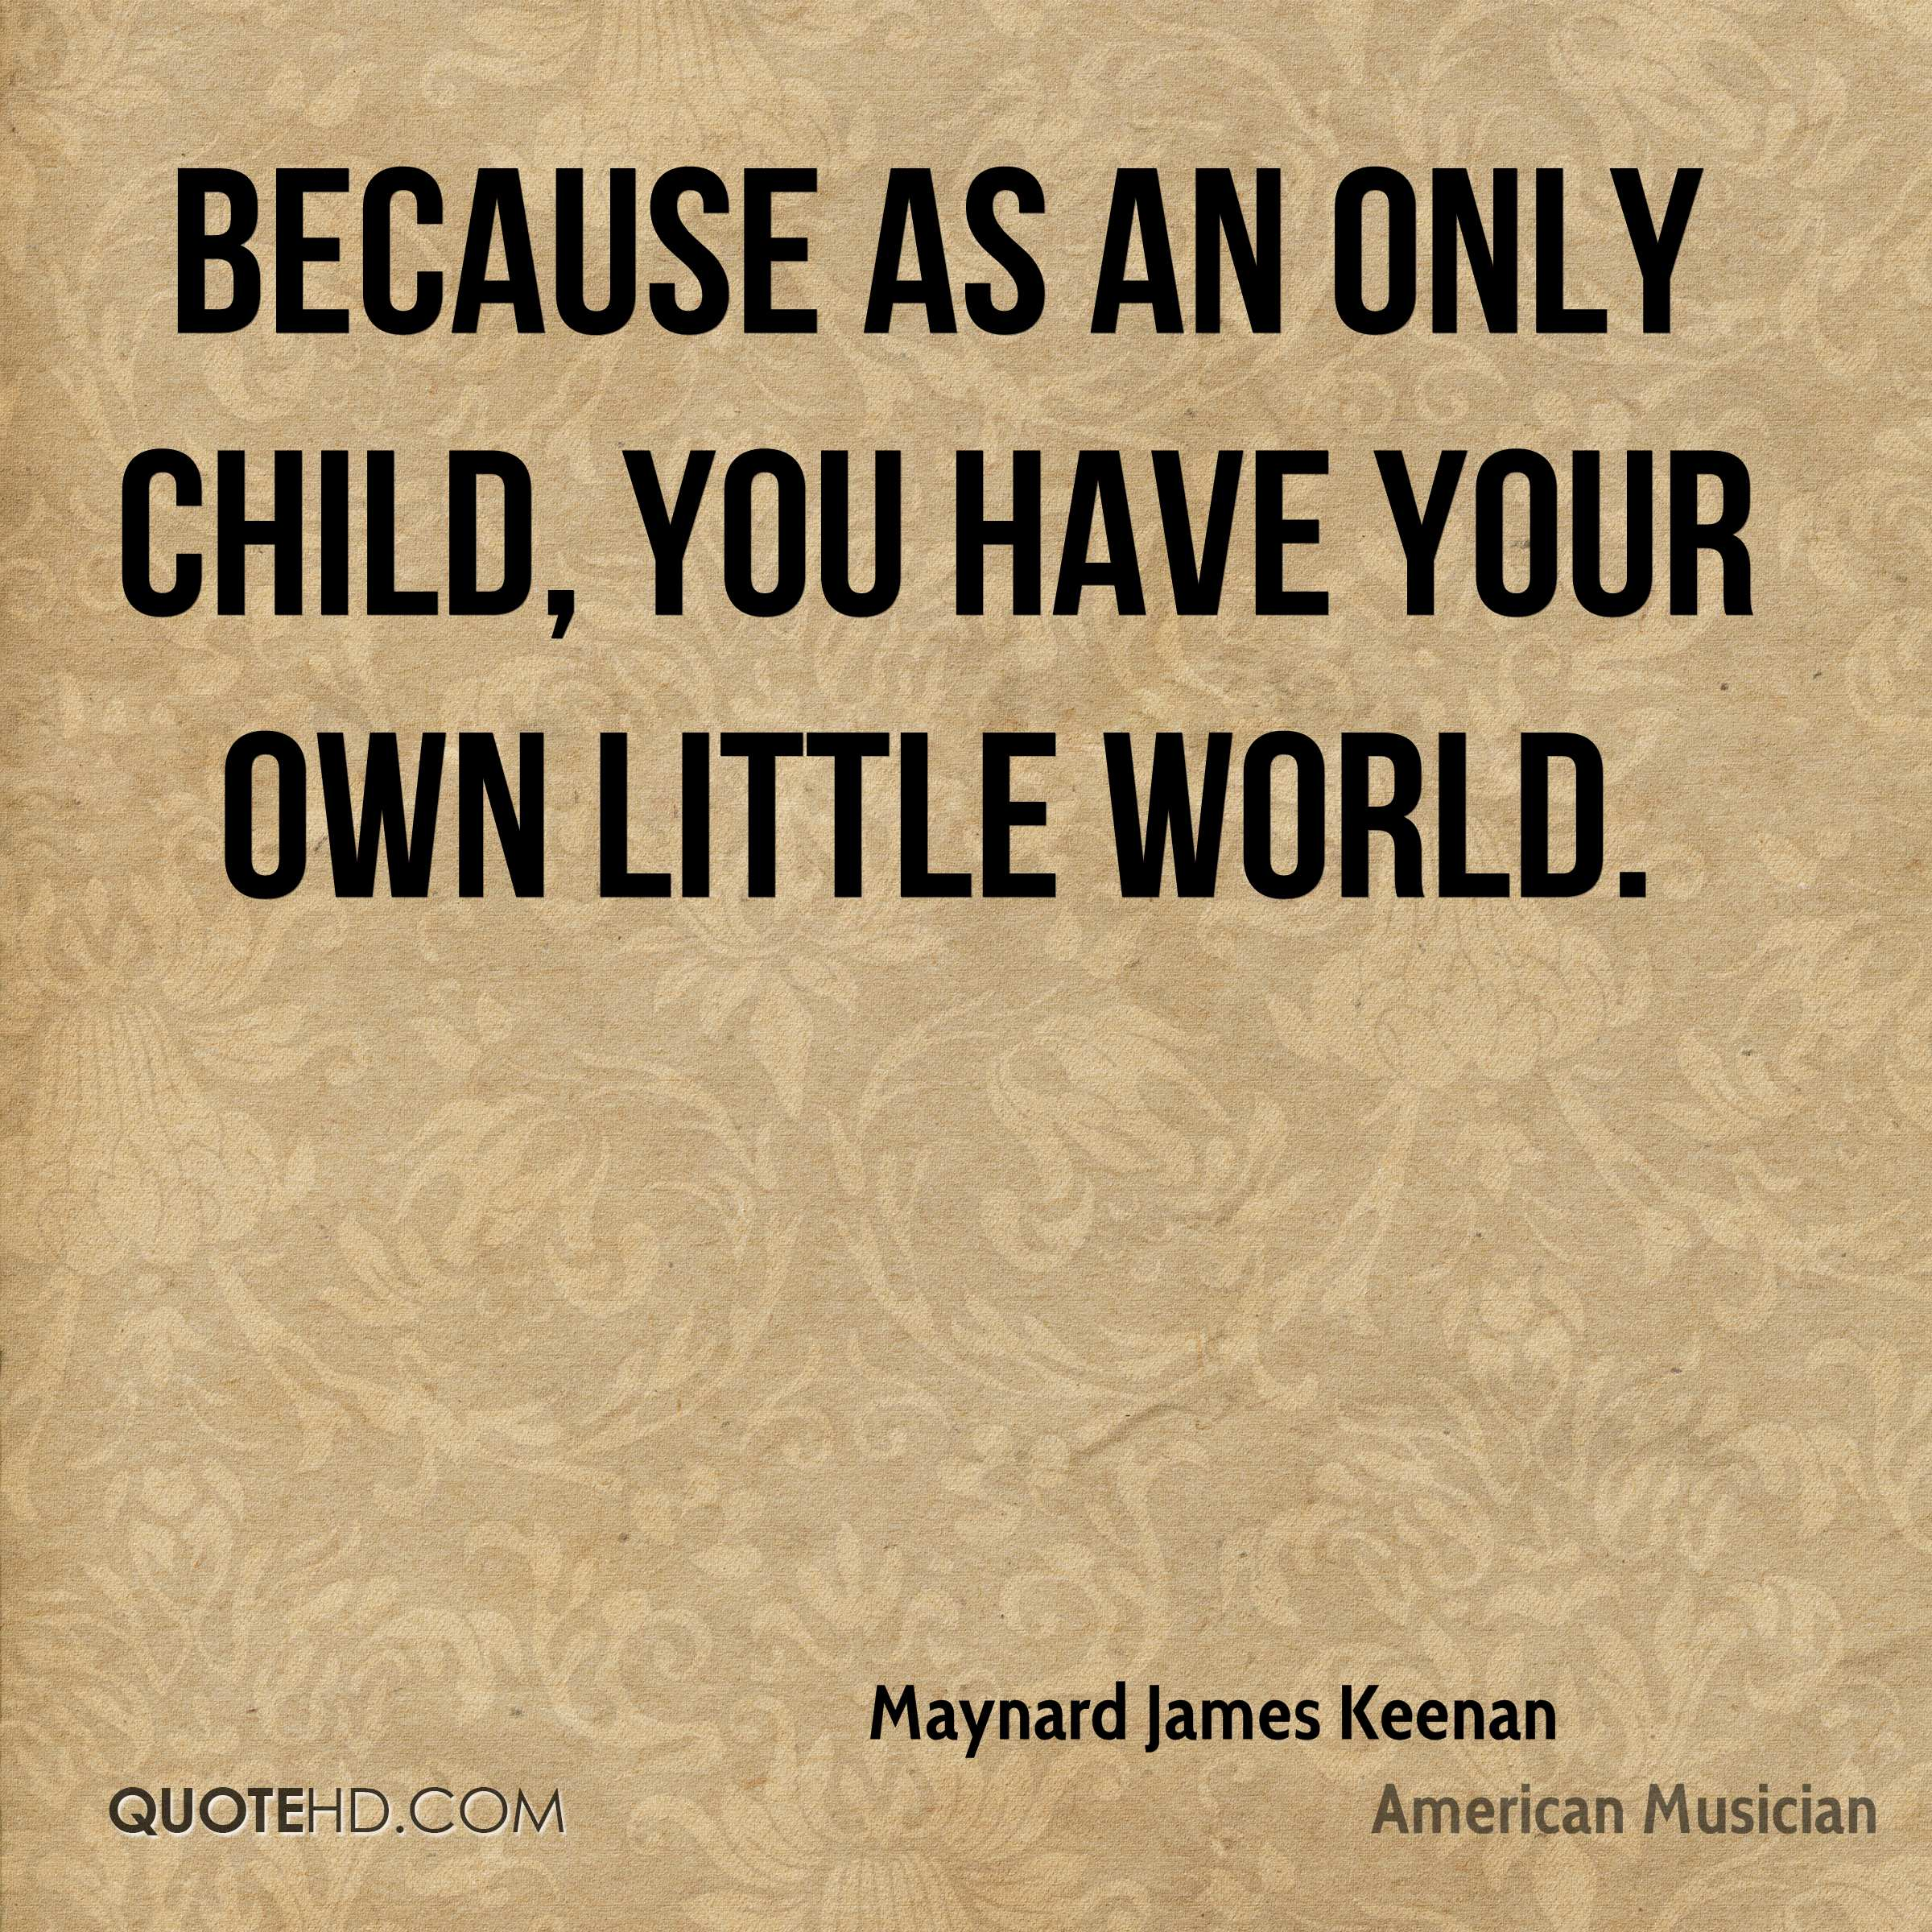 Because as an only child, you have your own little world.